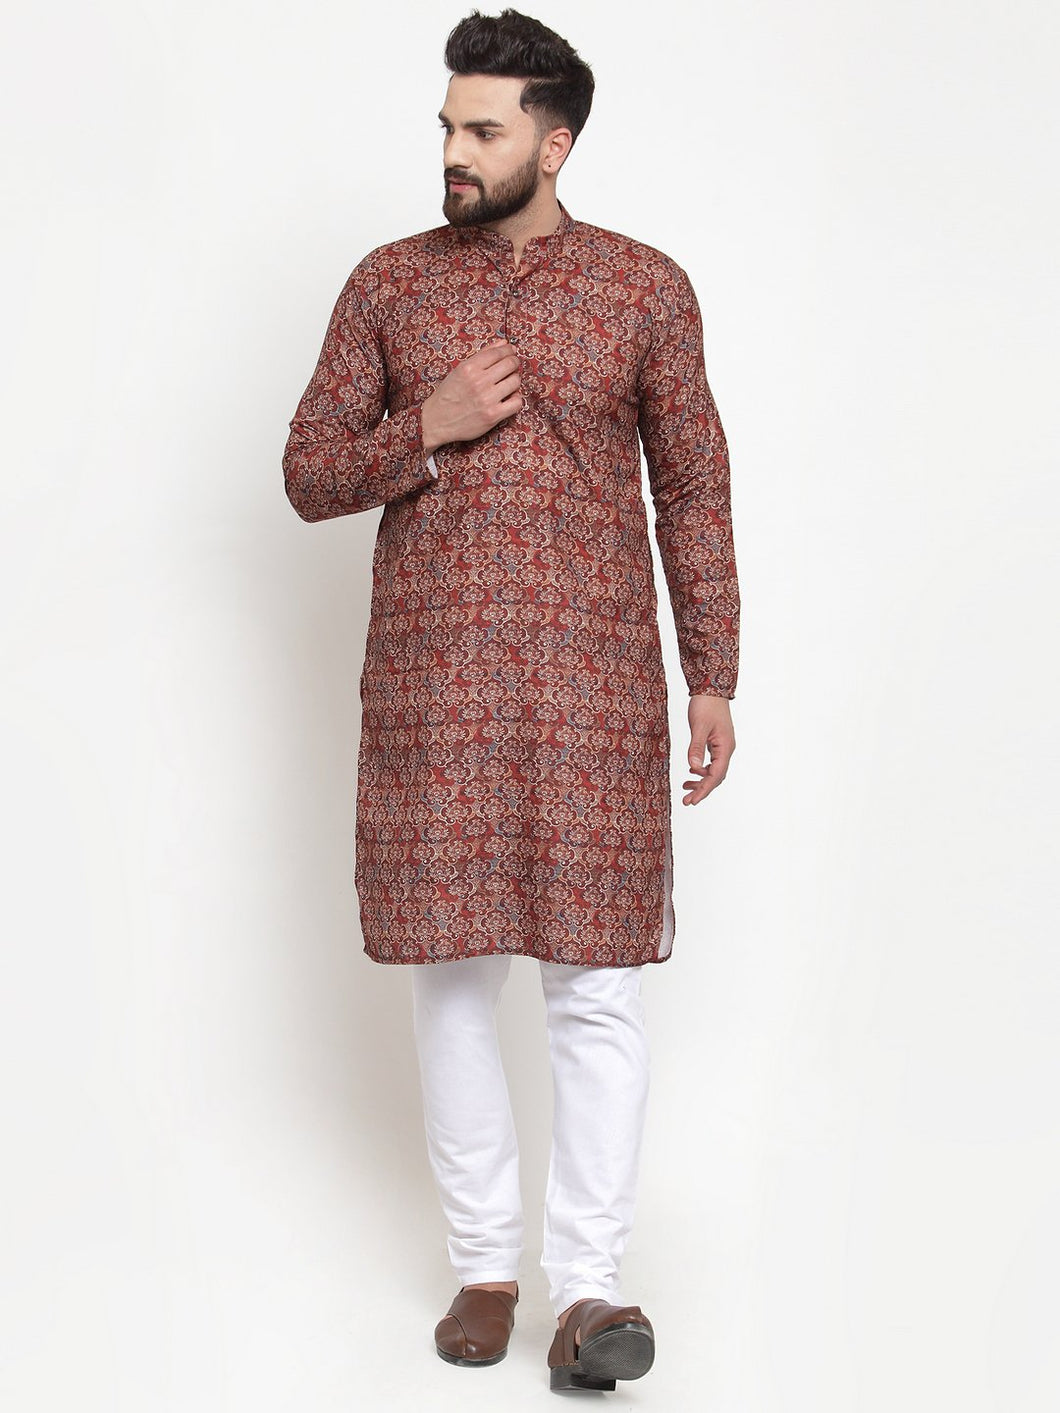 Jompers Men Maroon & Beige Digital Printed Kurta Only ( KO 602 Maroon )